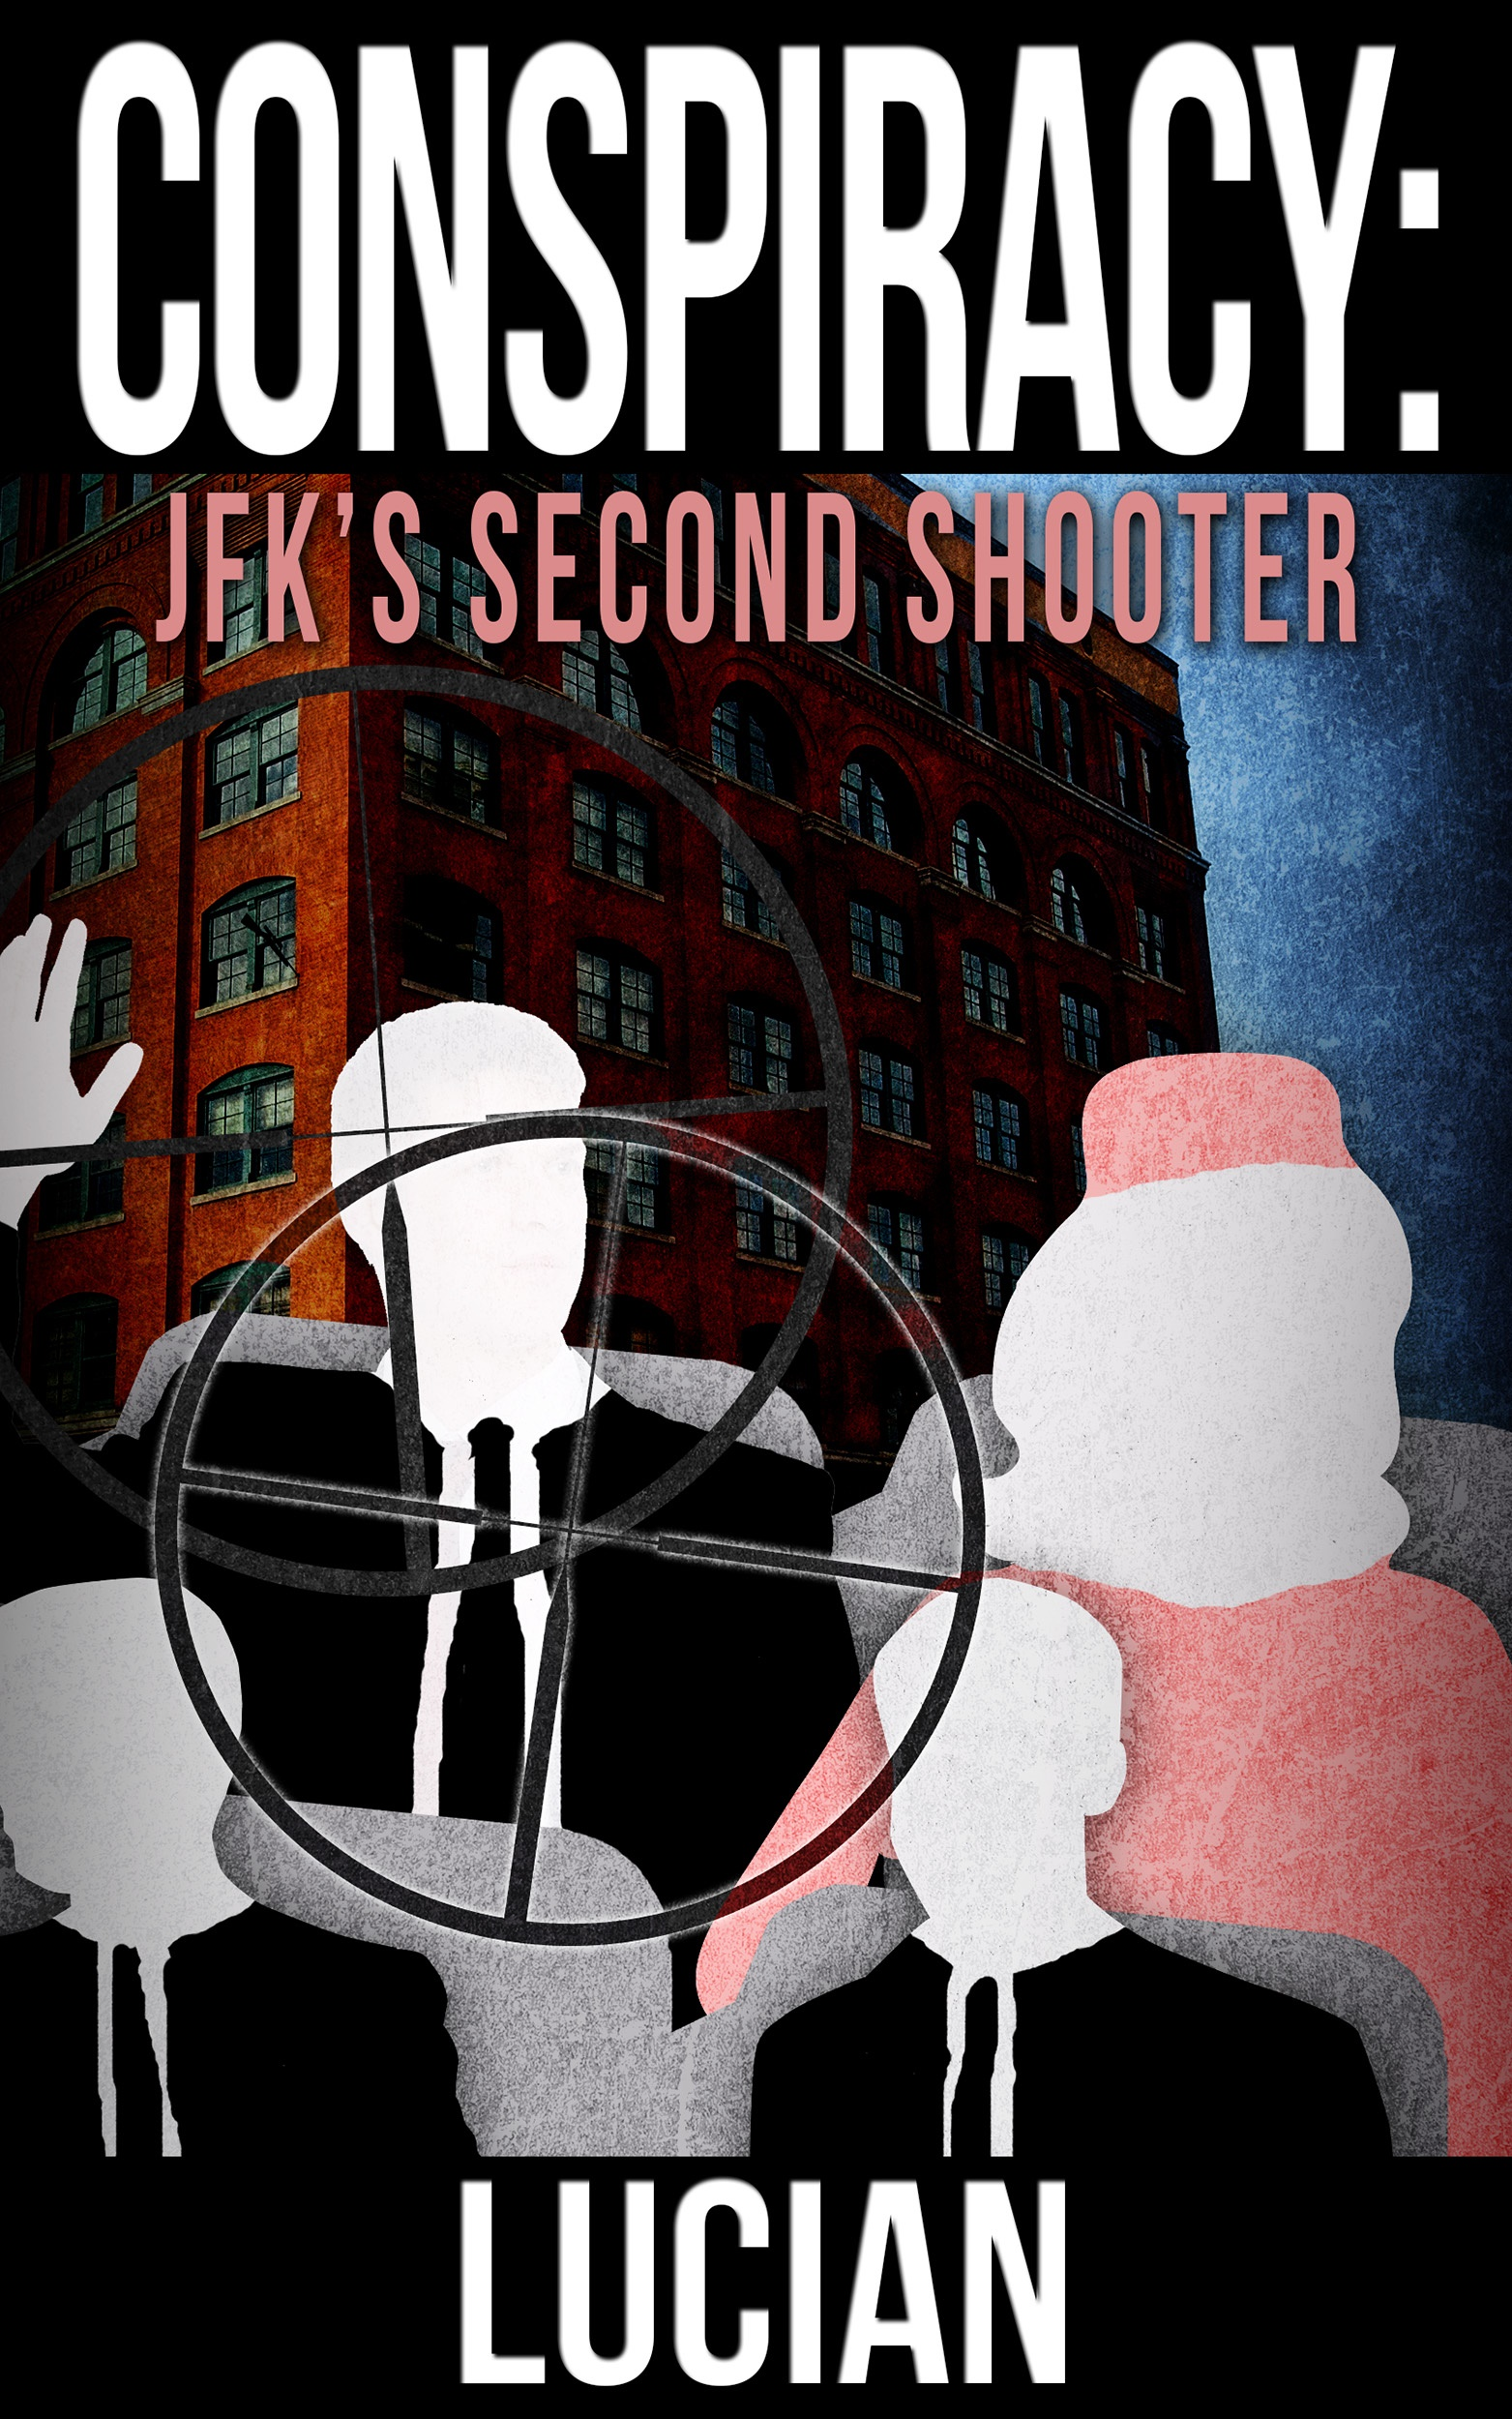 Conspiracy JFK Second Shooter